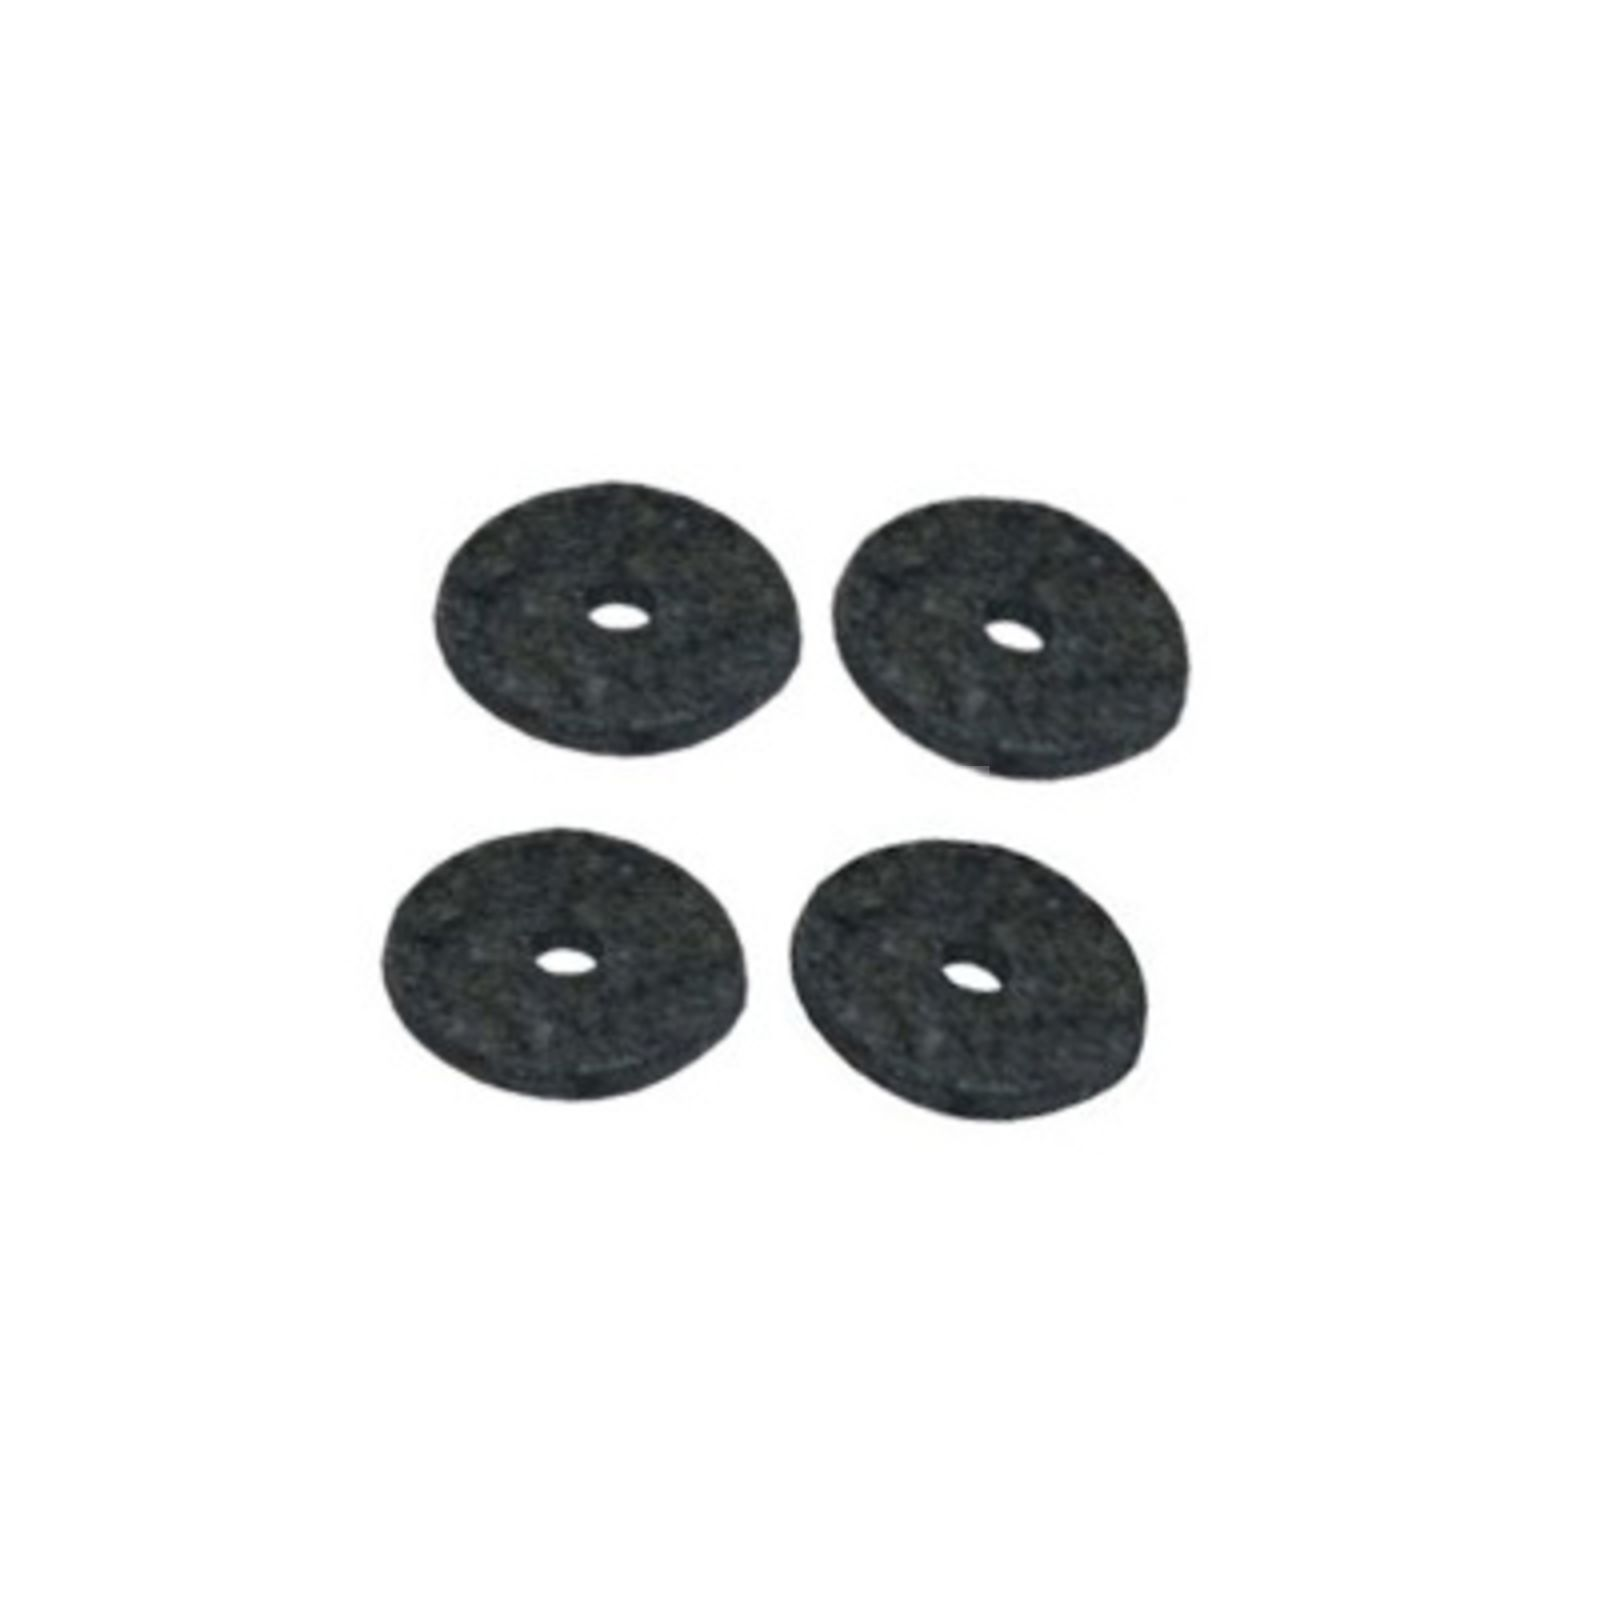 Dixon Cymbal felts, f. hihat clutch, 4 pcs Product Image